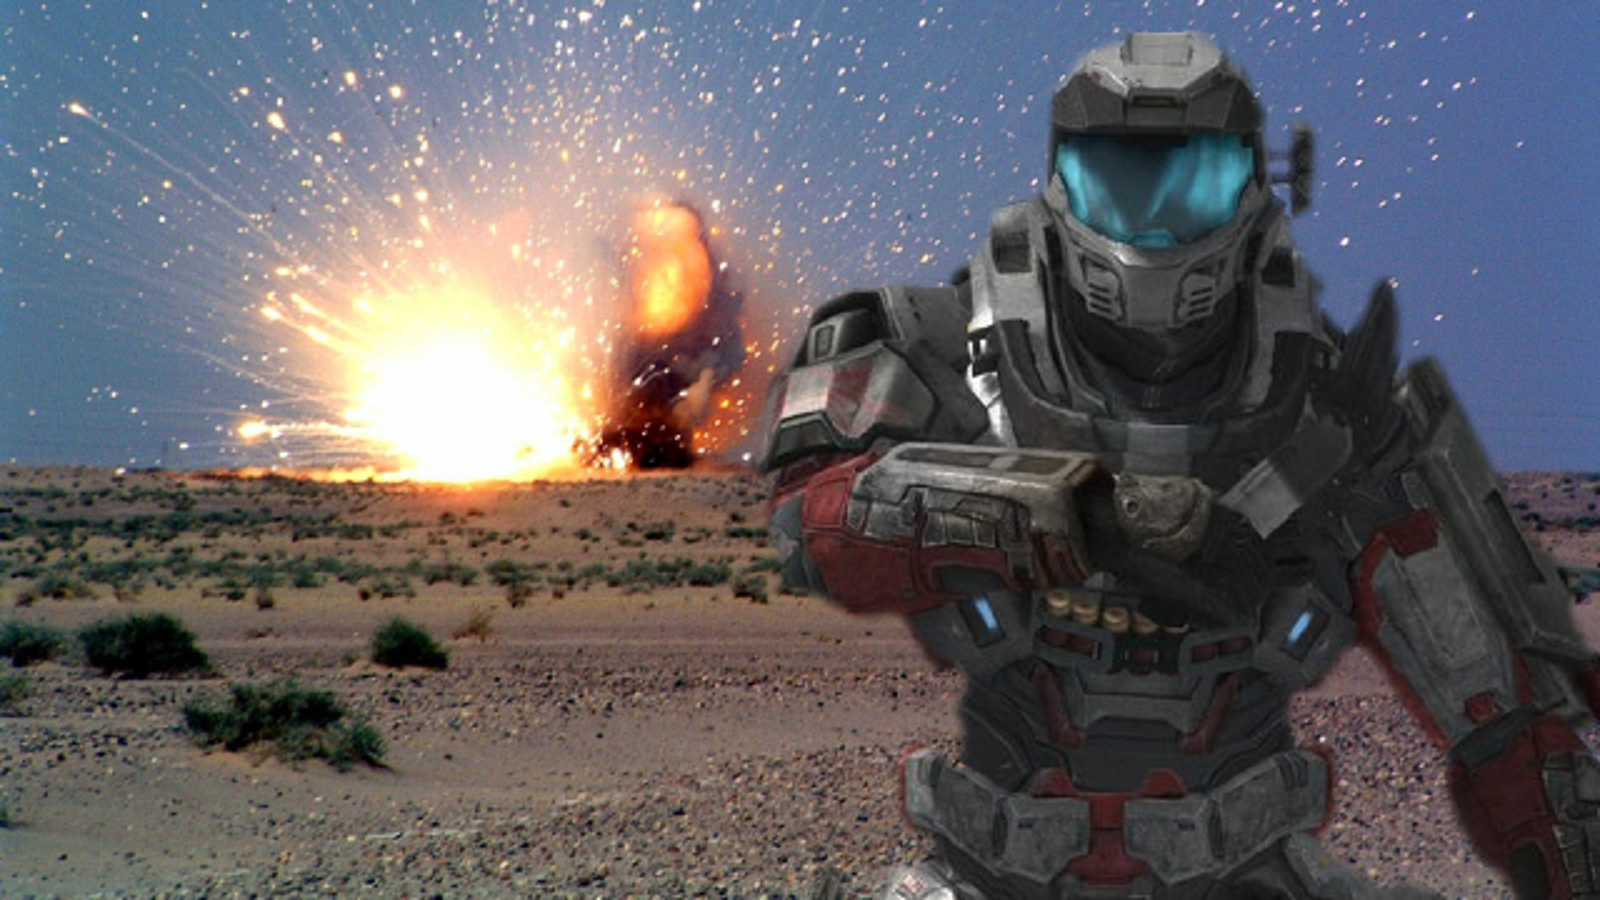 Halo S Creators Pass The Bungie Net Baton To 343 Industries On March